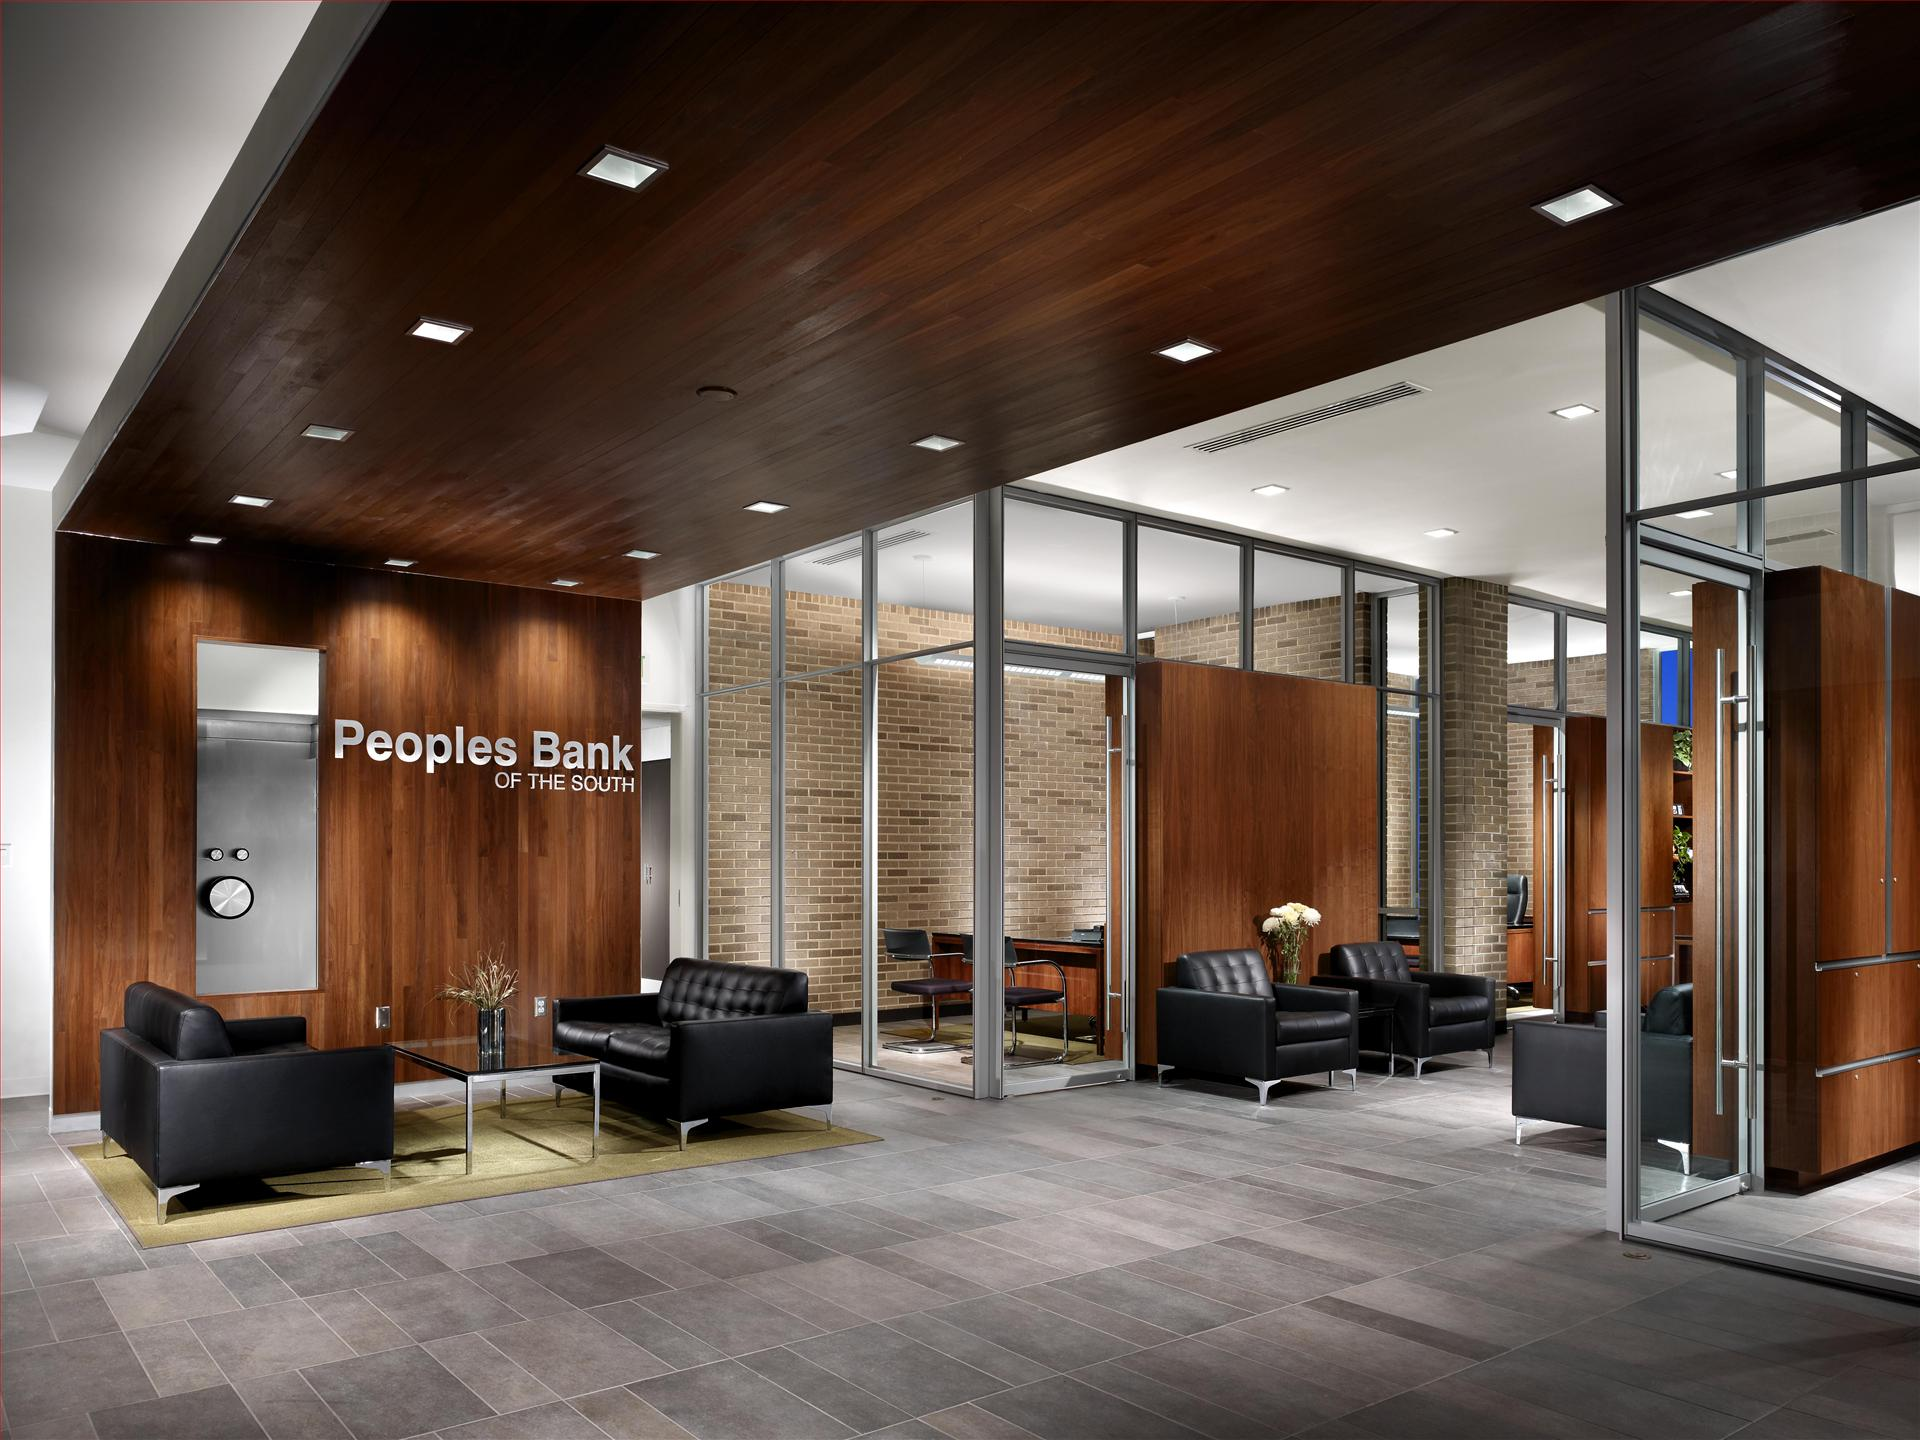 Peoples bank of the south lafollette tn jenkins for Bank designs architecture